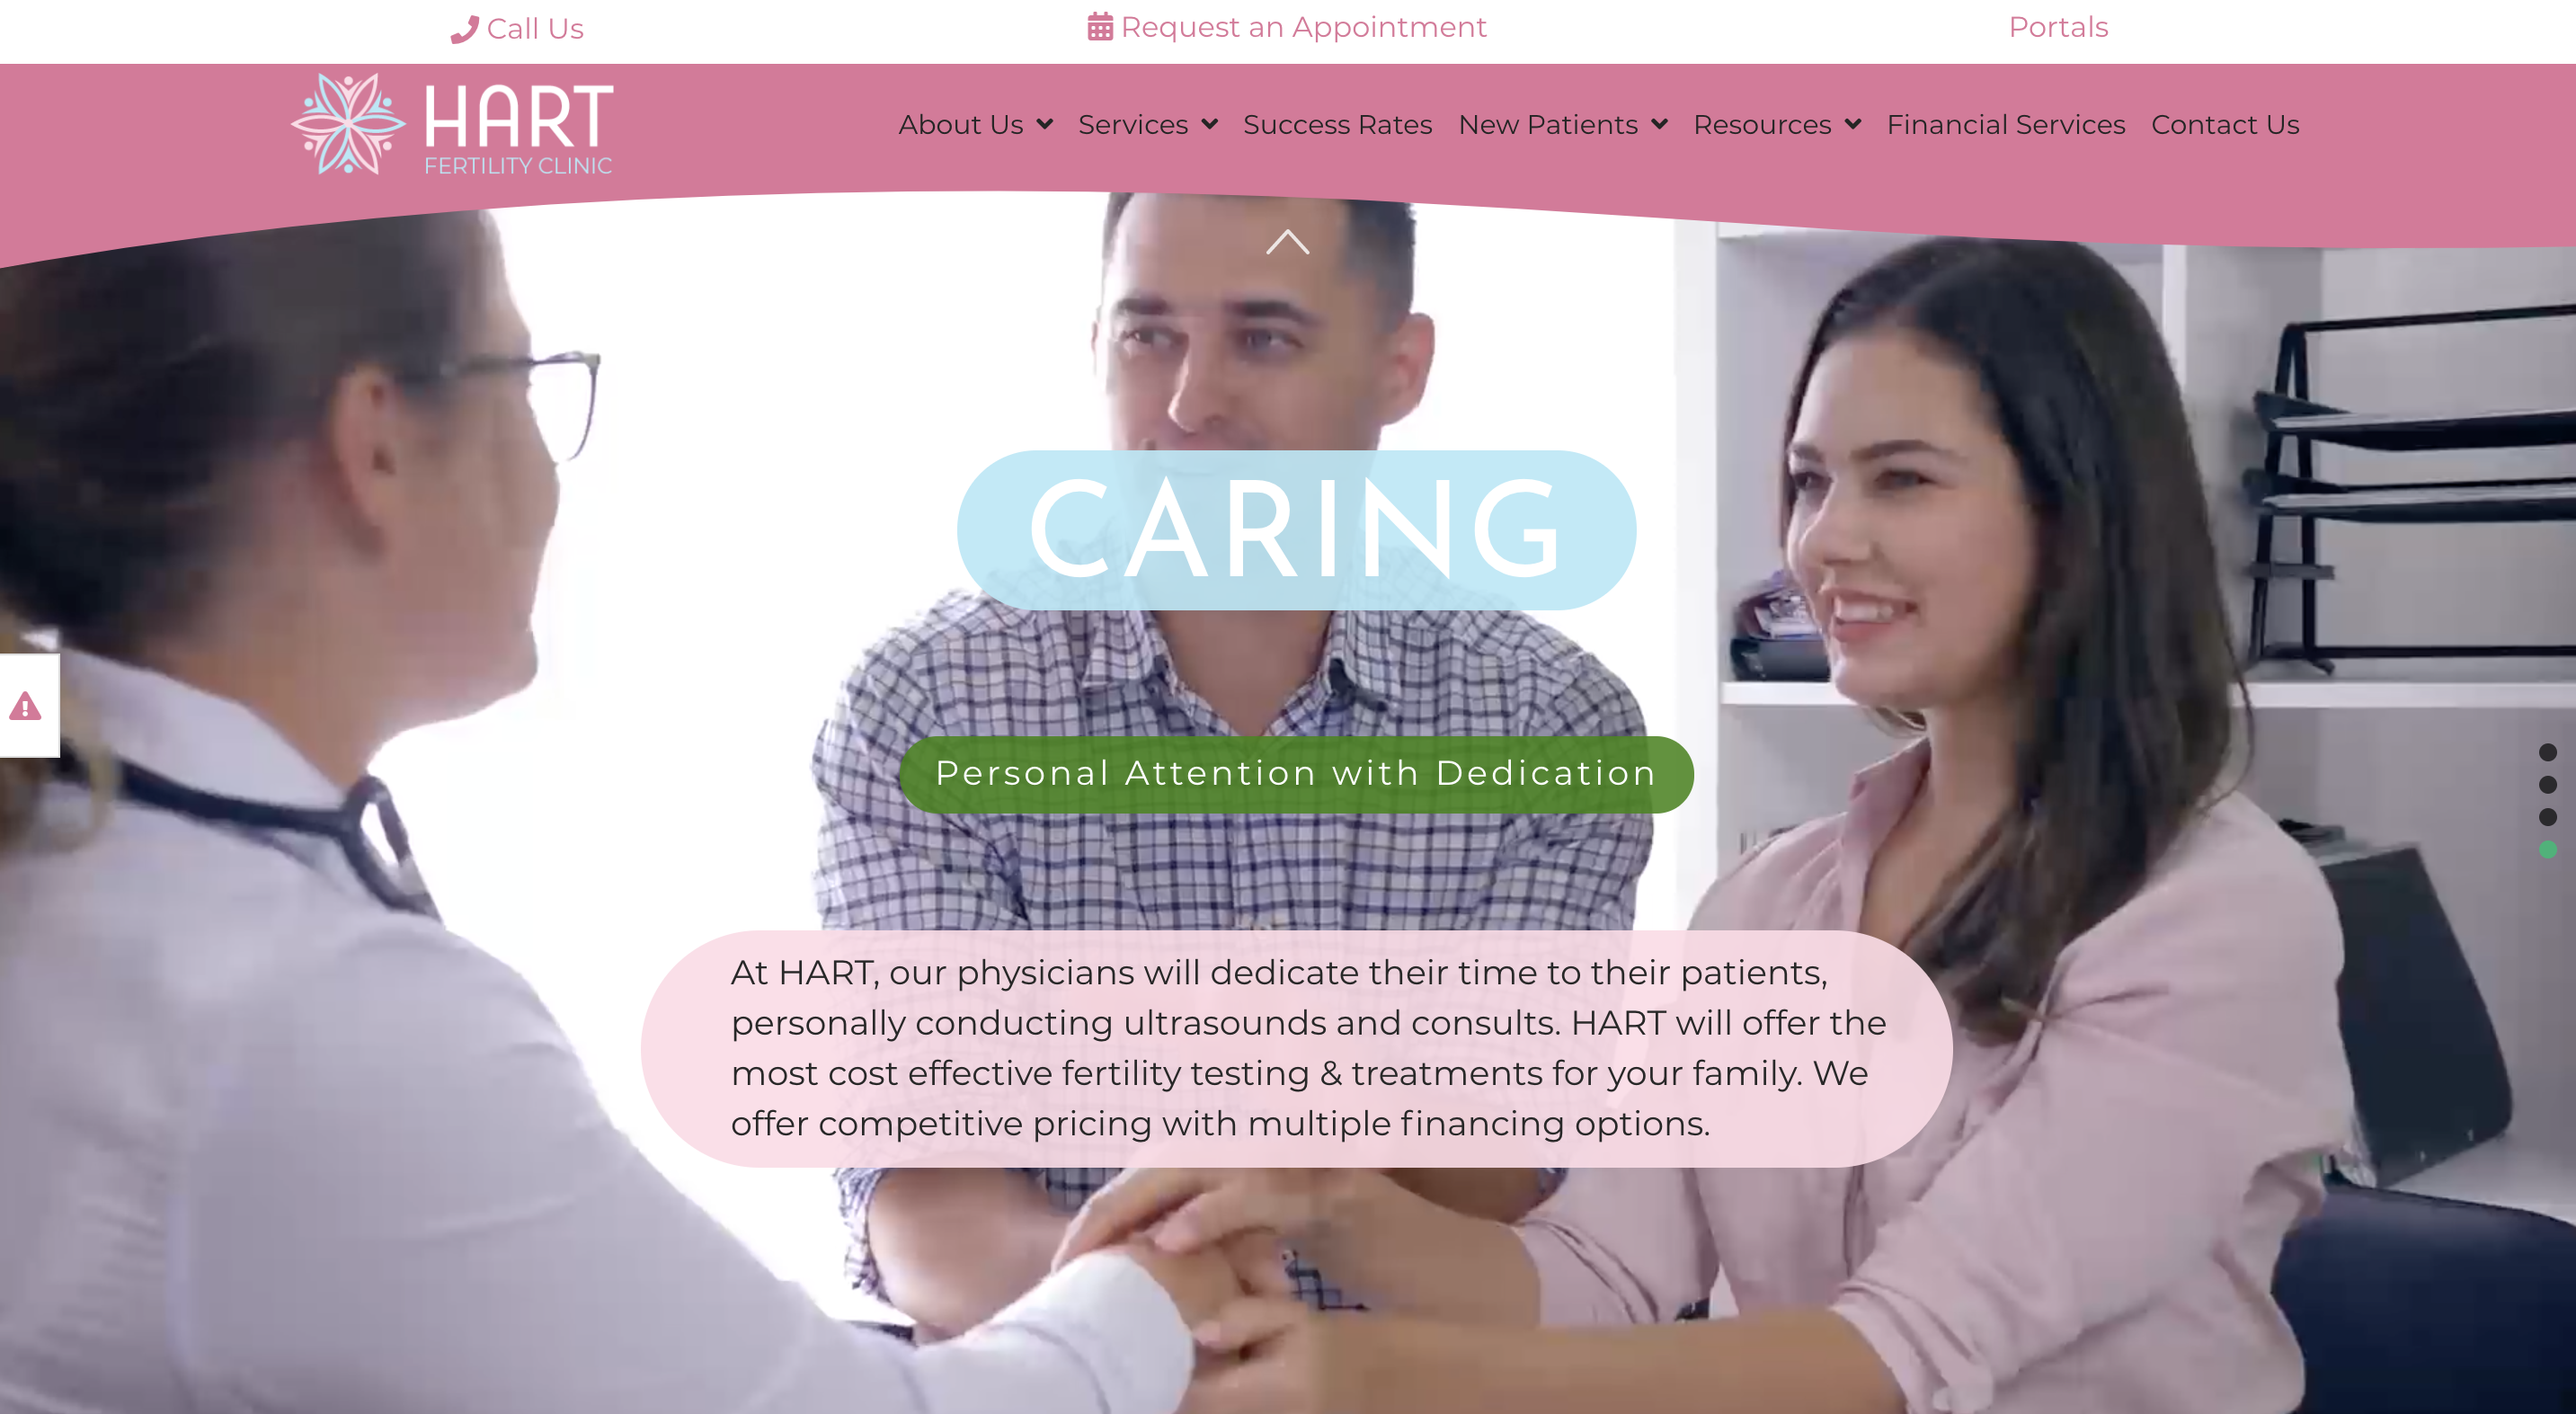 HART North Houston Fertility Clinic homepage slide 4